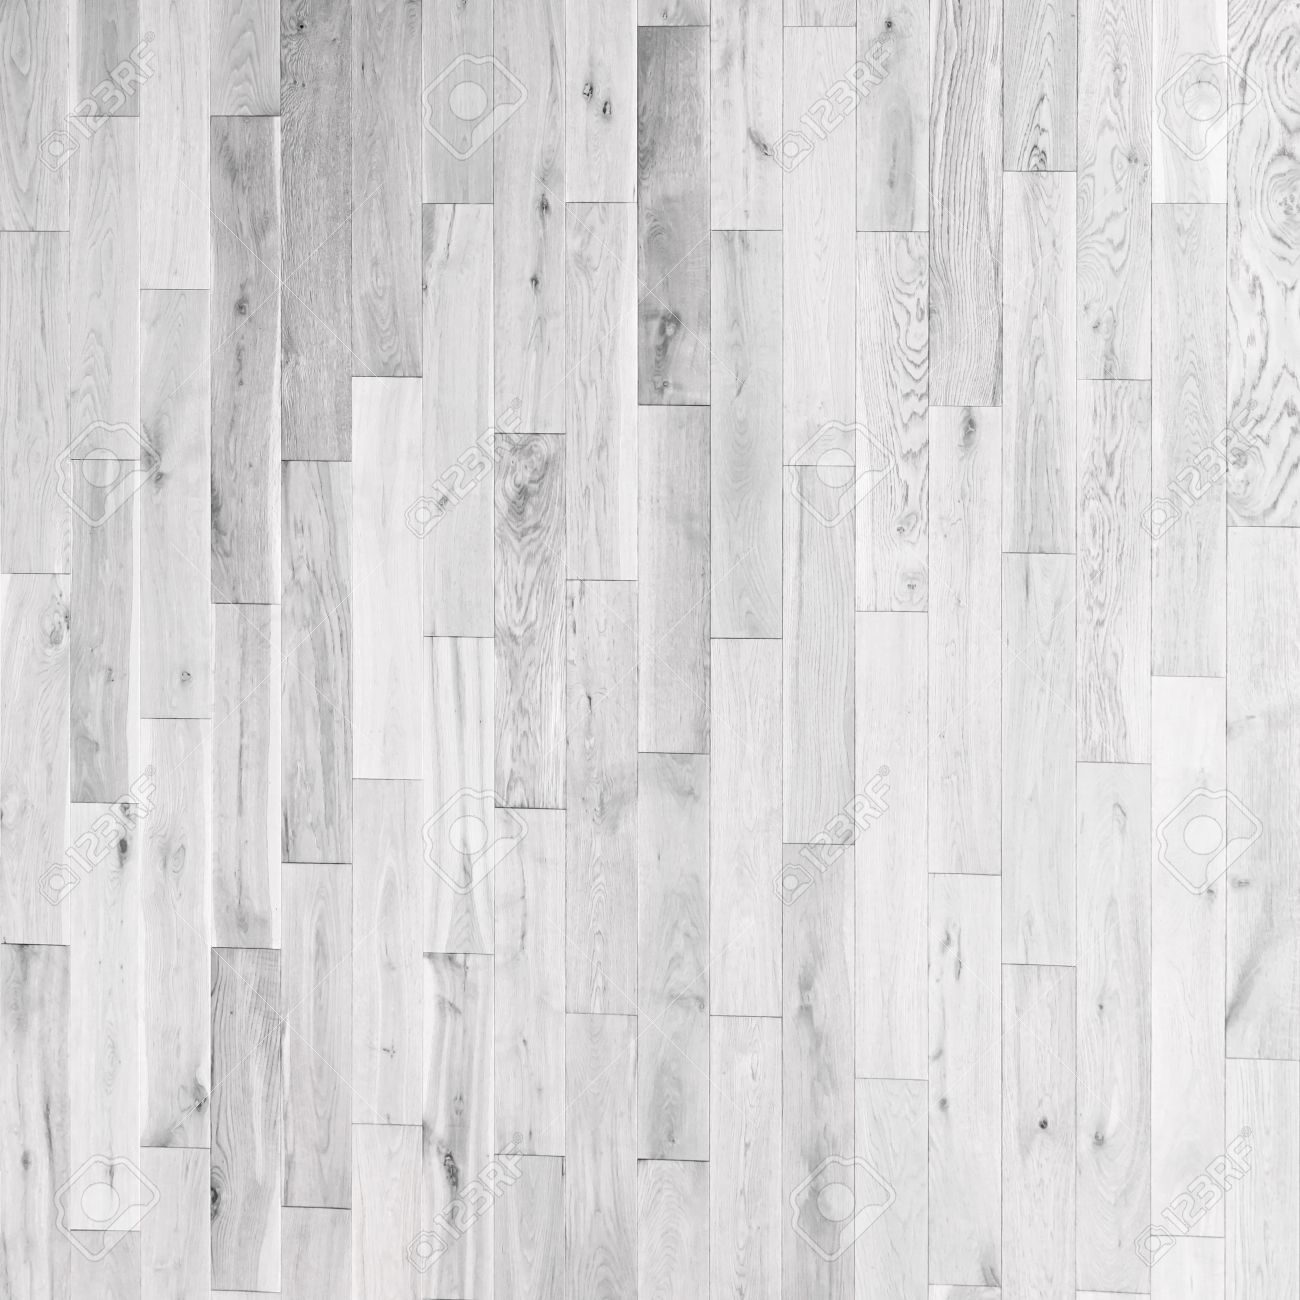 white floor texture.  White Stock Photo  White Wooden Parquet Flooring Texture Horizontal Seamless  Background With Floor Texture